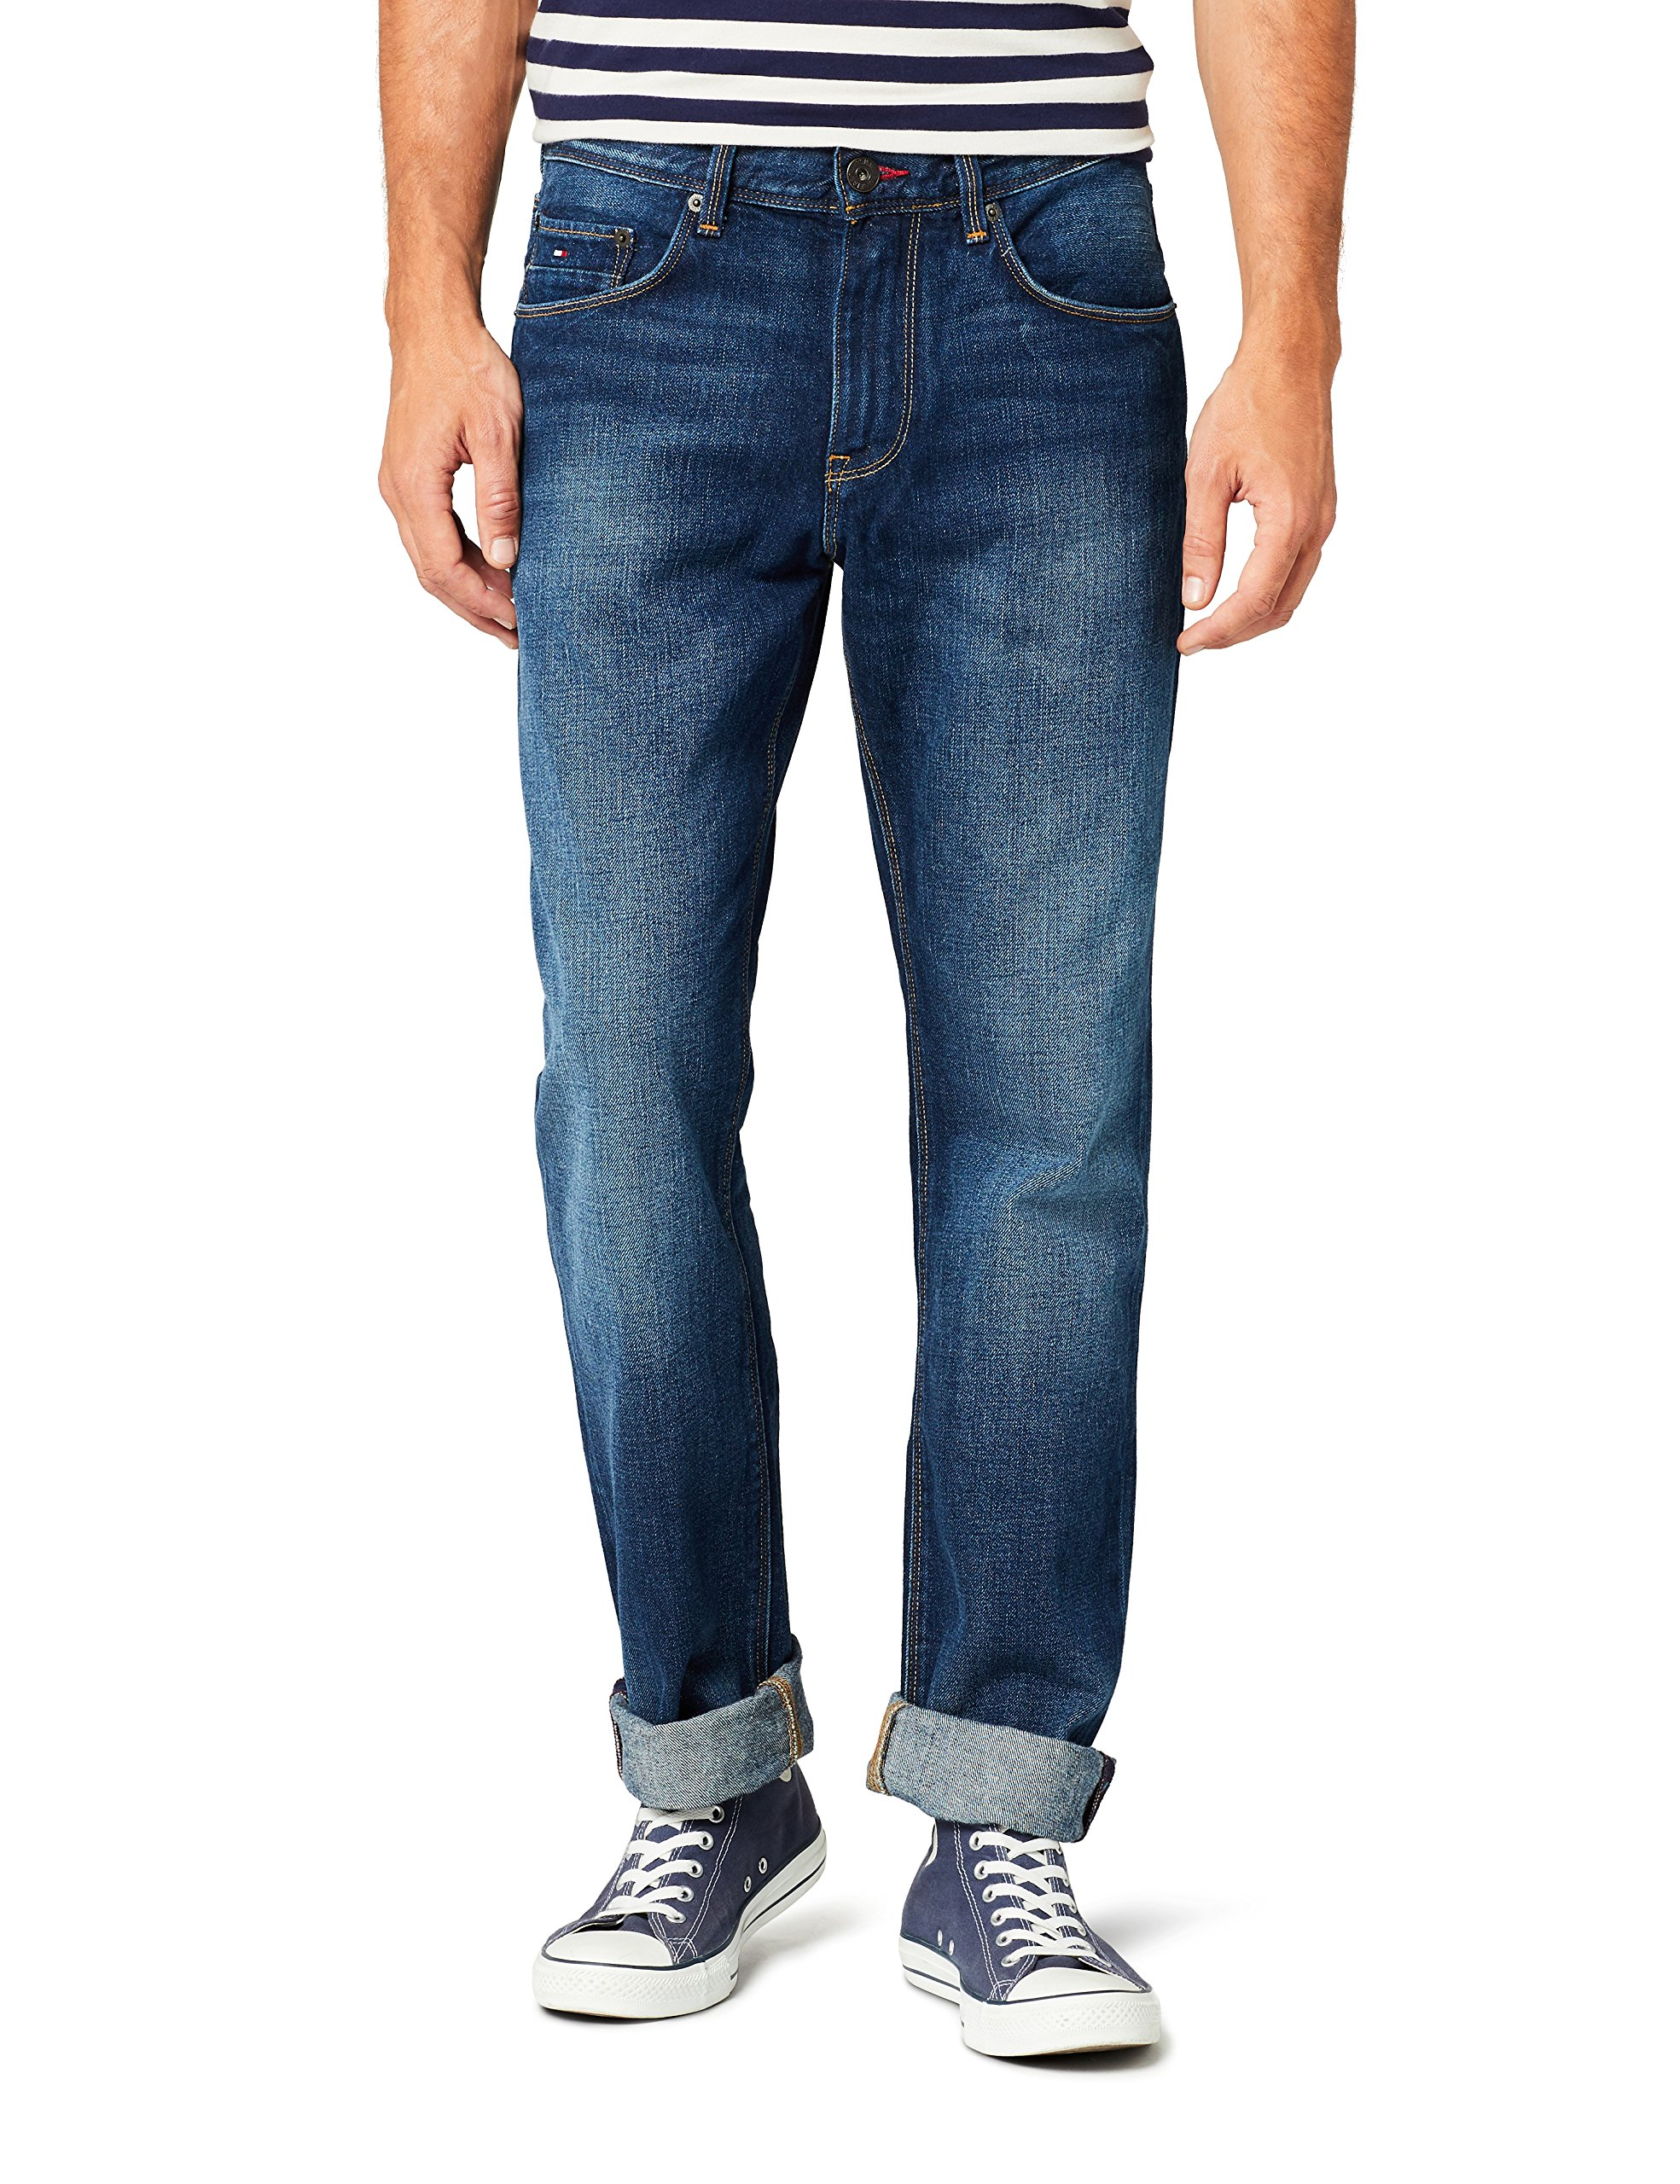 a53e21c0 Amazon.co.uk | Men's Jeans